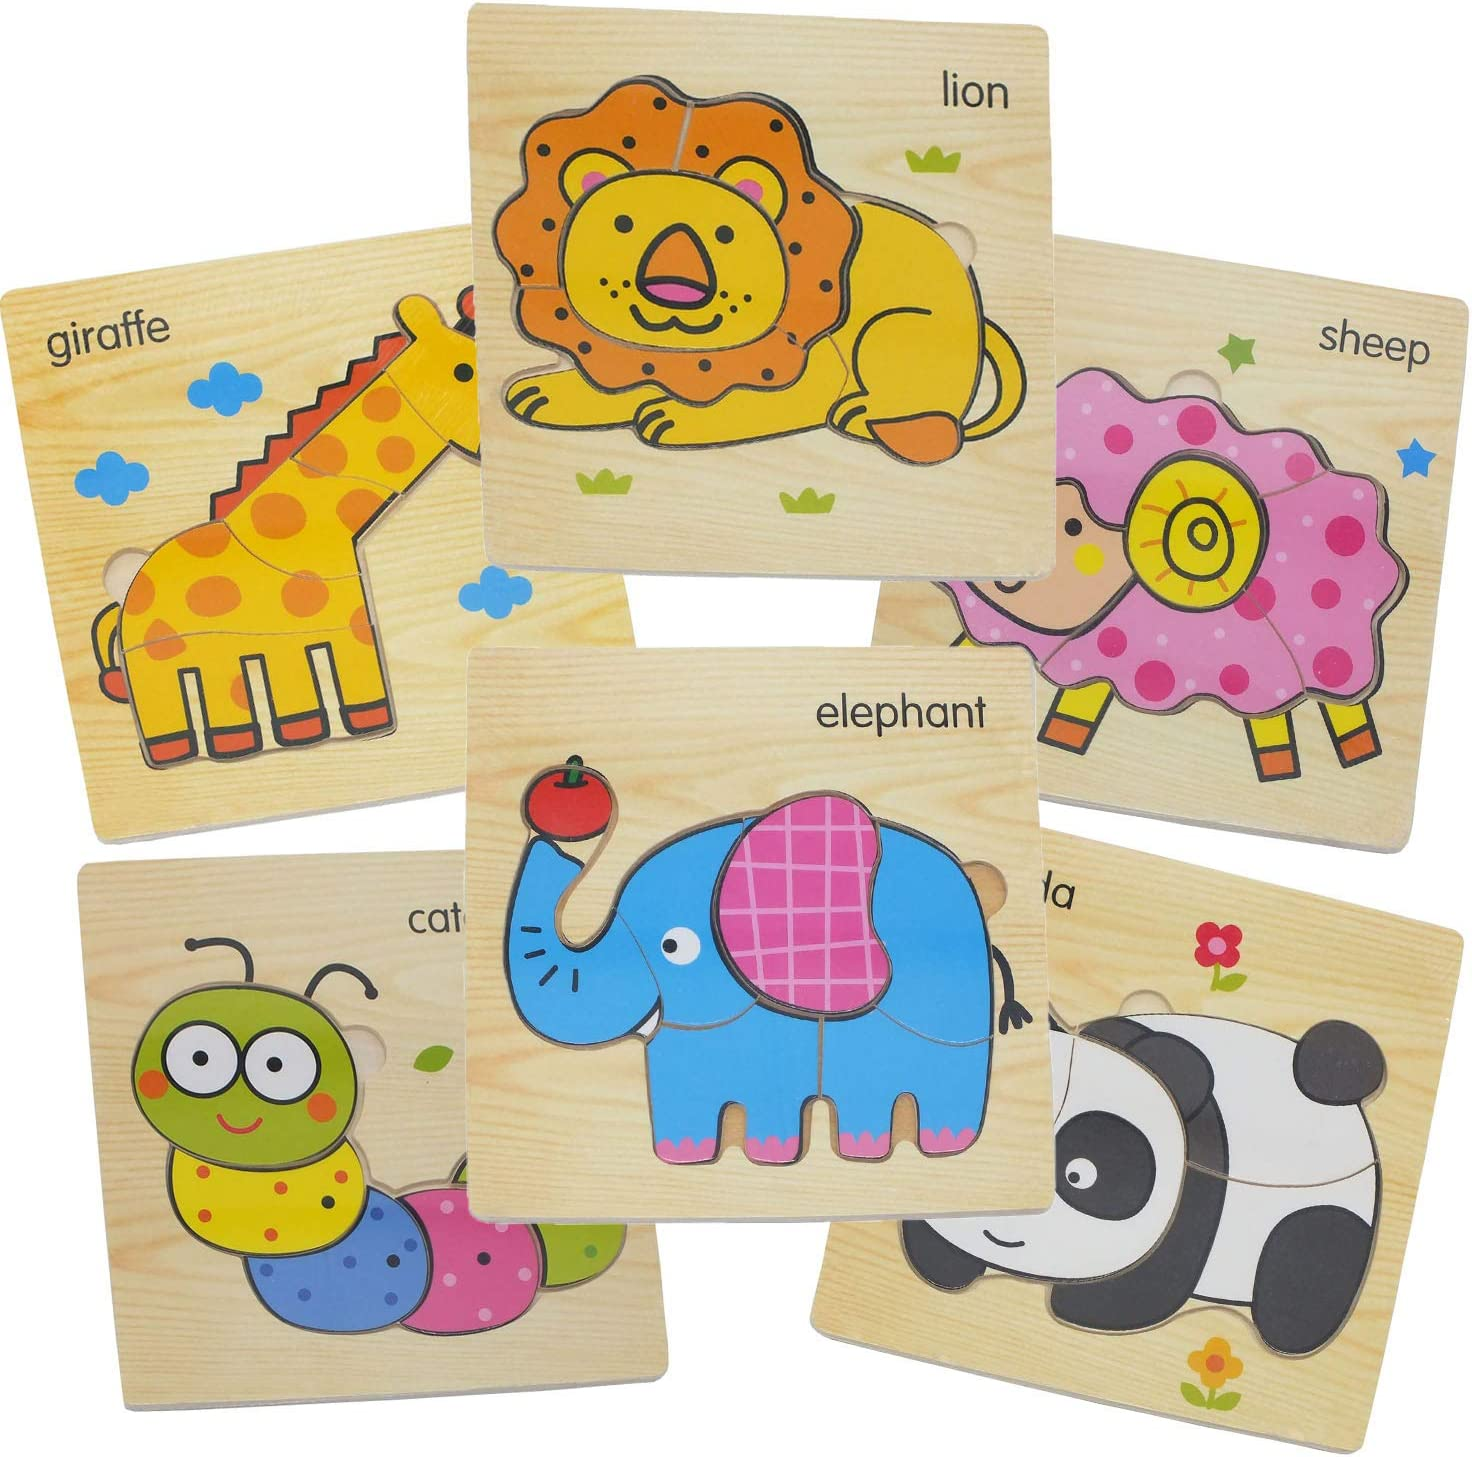 Vision and Motor Skills to Complete.Boys /&Girls Educational Toys Gift, A Perfect Challenge for A Growing Mind! 6 Patterns Toddler Puzzles.More Creativity Wooden Puzzles